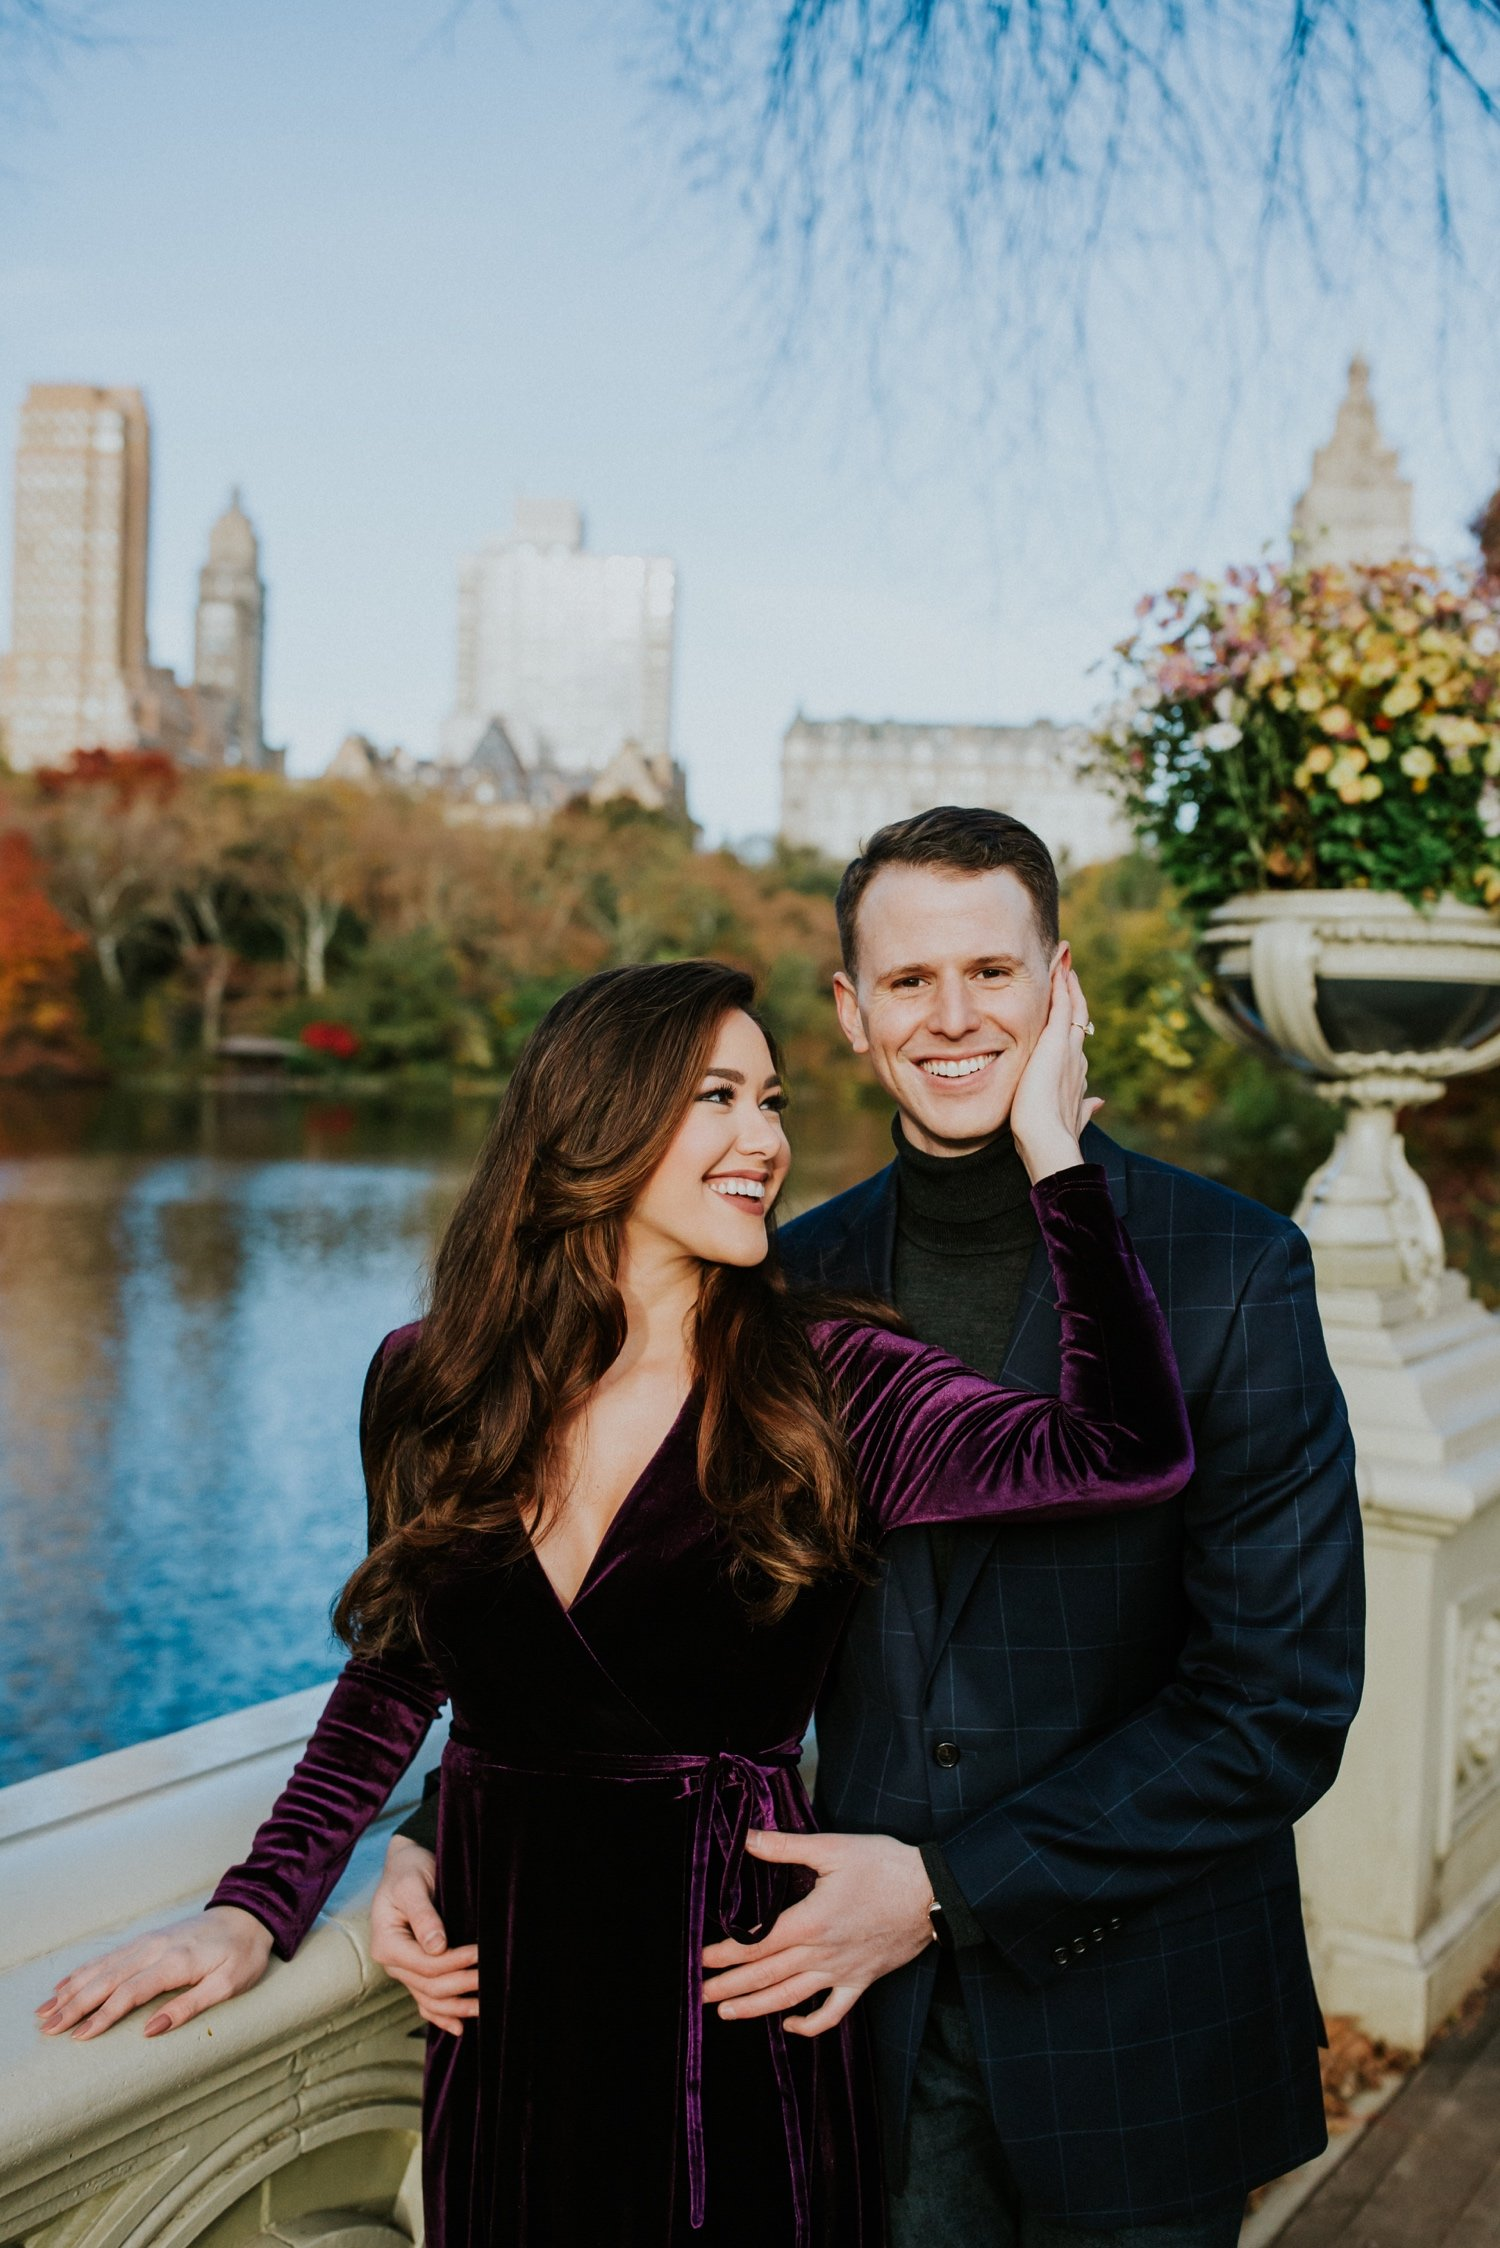 Best Manhattan Wedding Photographers, Top 10 Manhattan Wedding Photographers, Top 5 NYC Wedding Photographers, Best Wedding Photographers in NYC, NY Wedding Photographers, NYC Wedding Photographers,